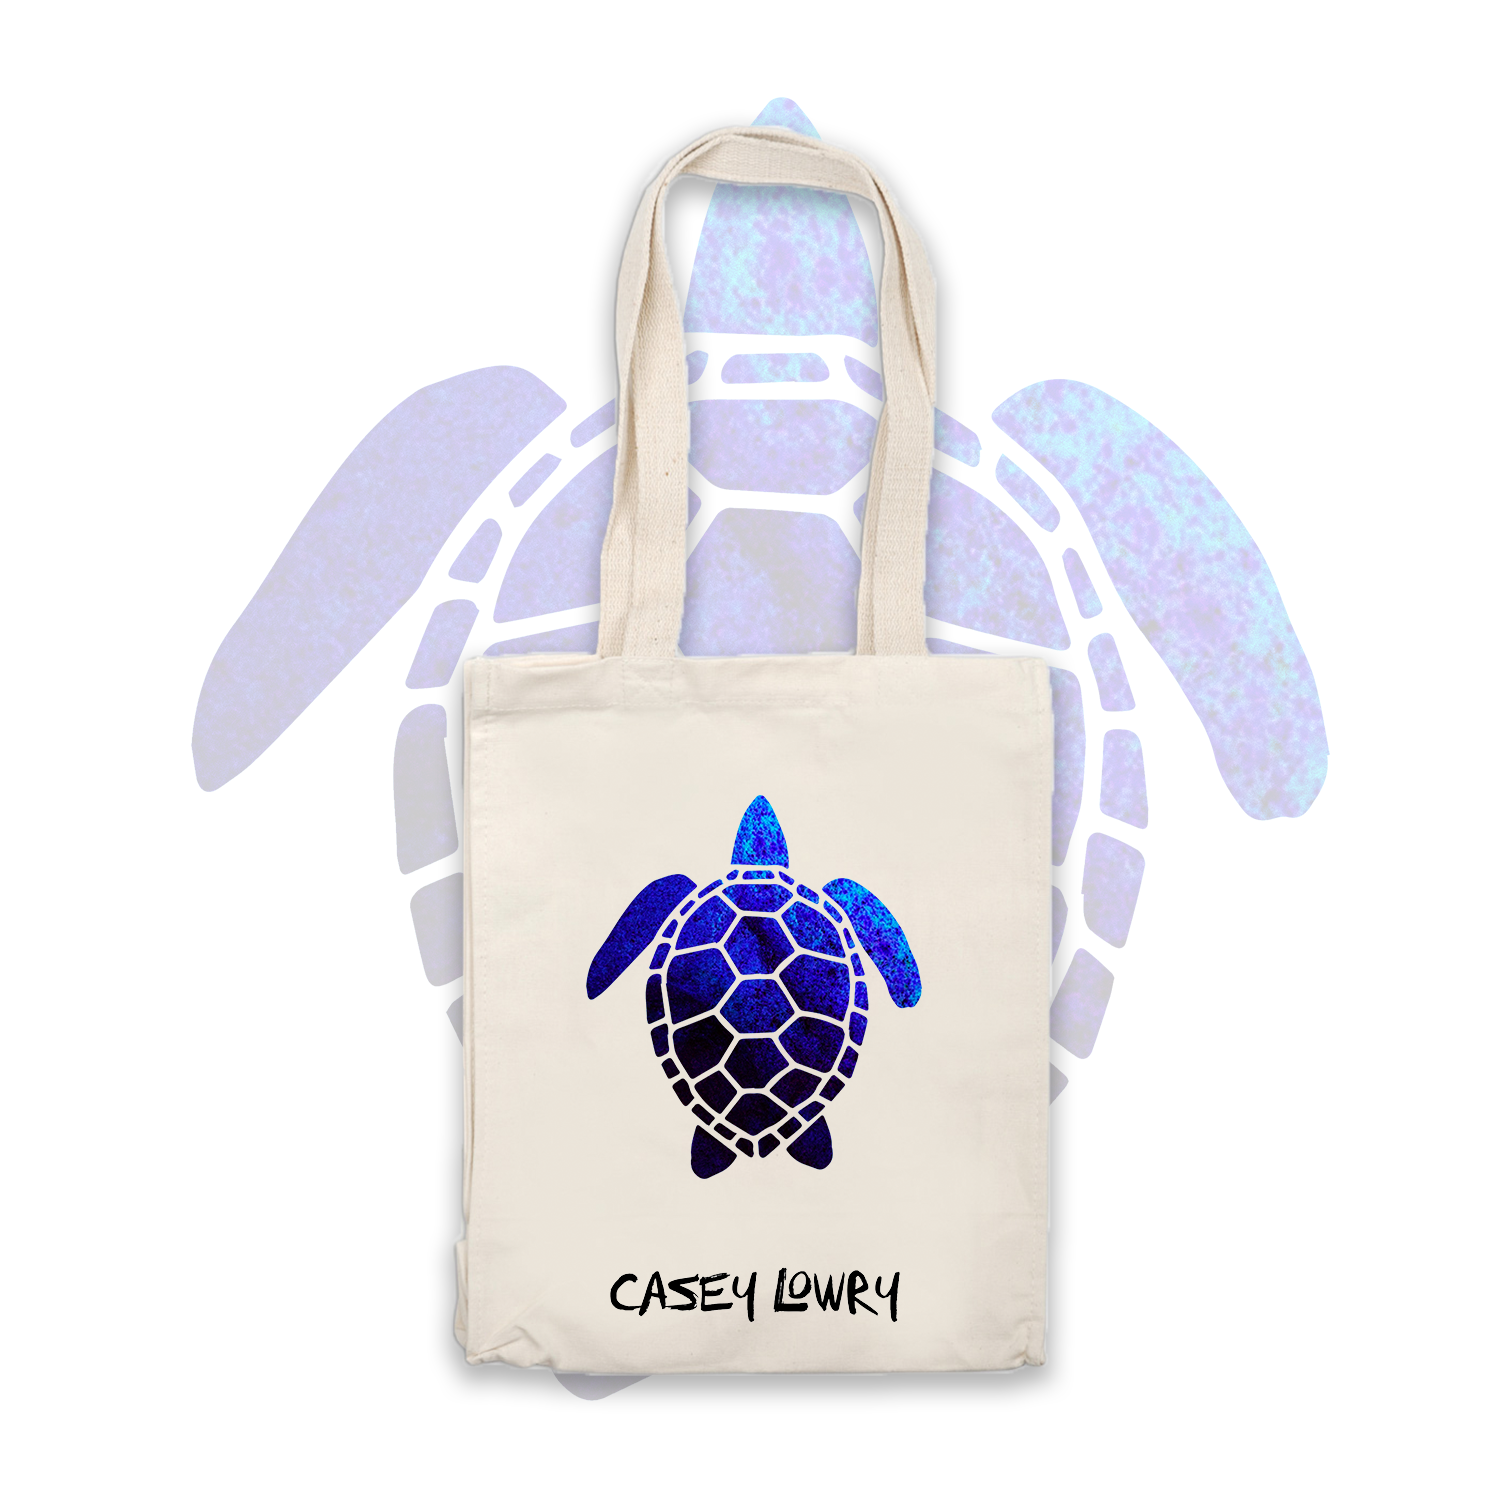 Tote Bag - Casey Lowry